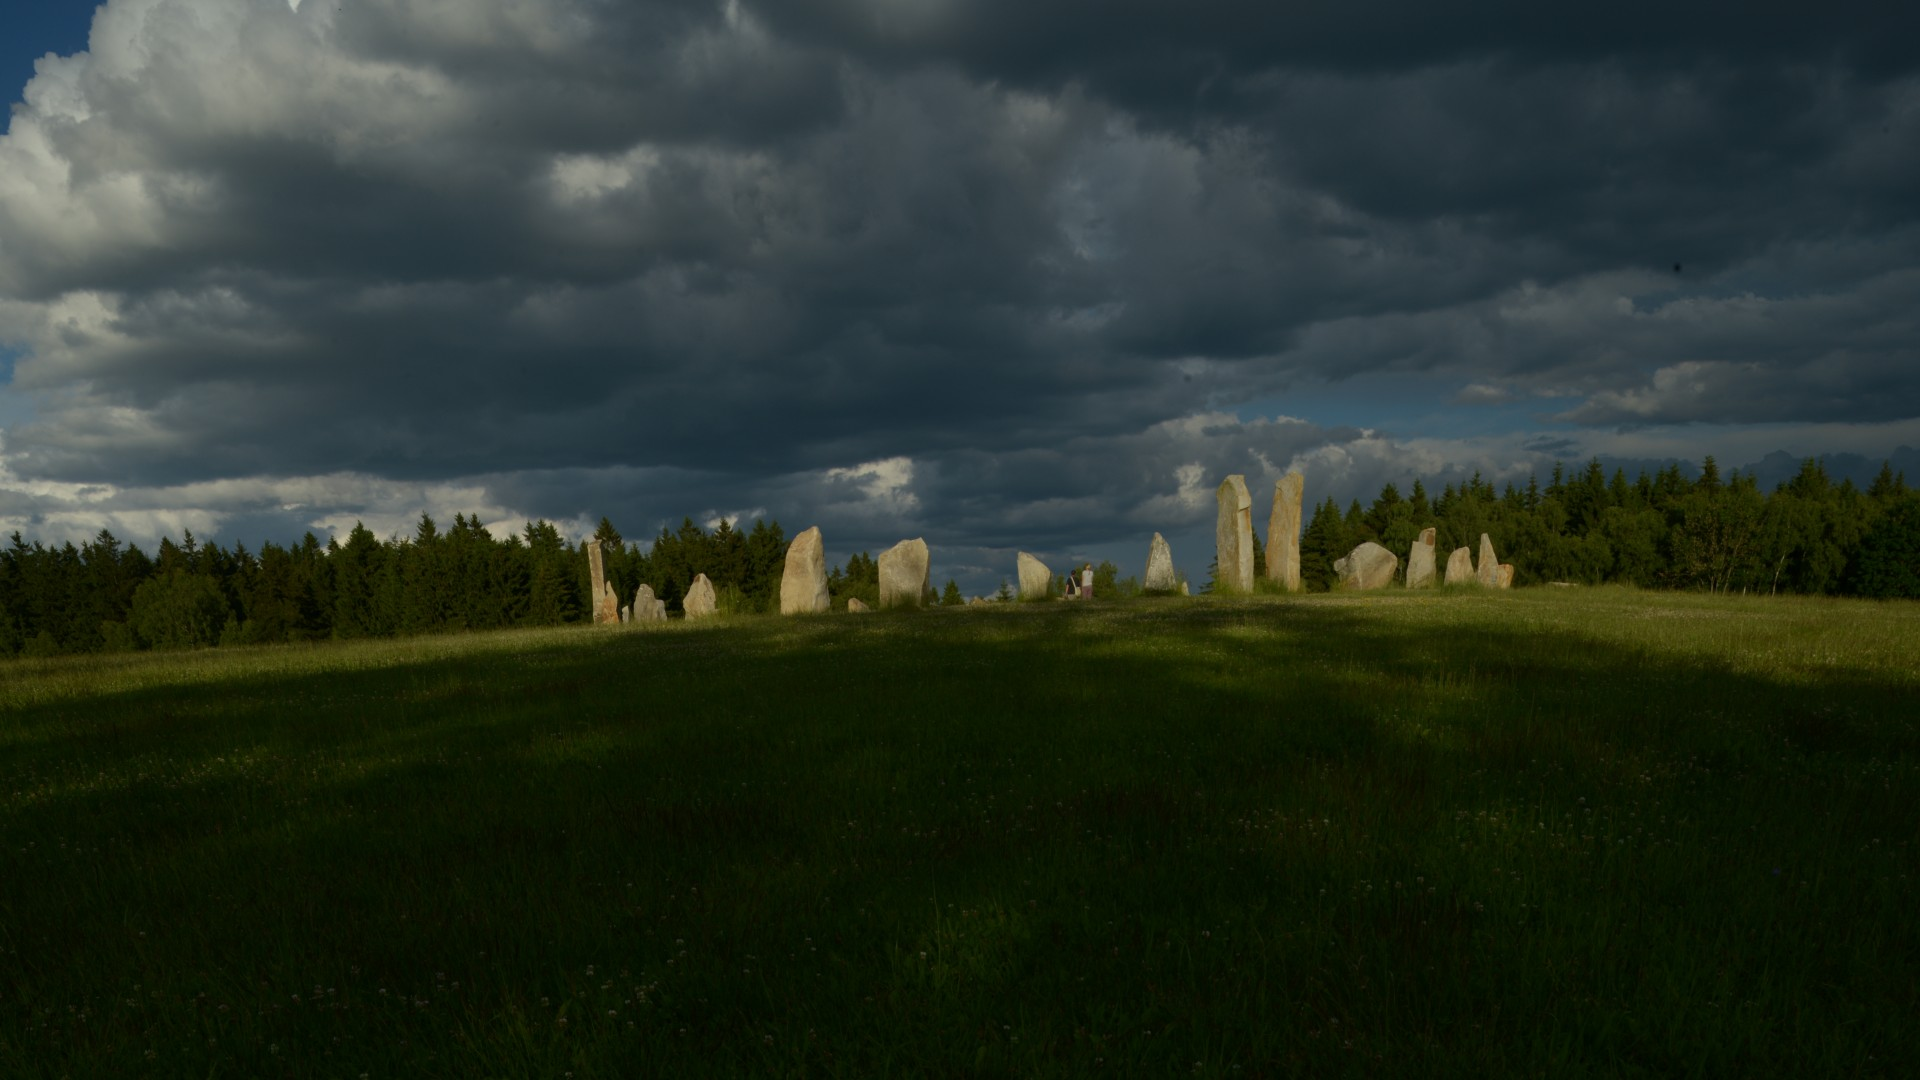 THE STONE CIRCLE OF THE DRUIDS